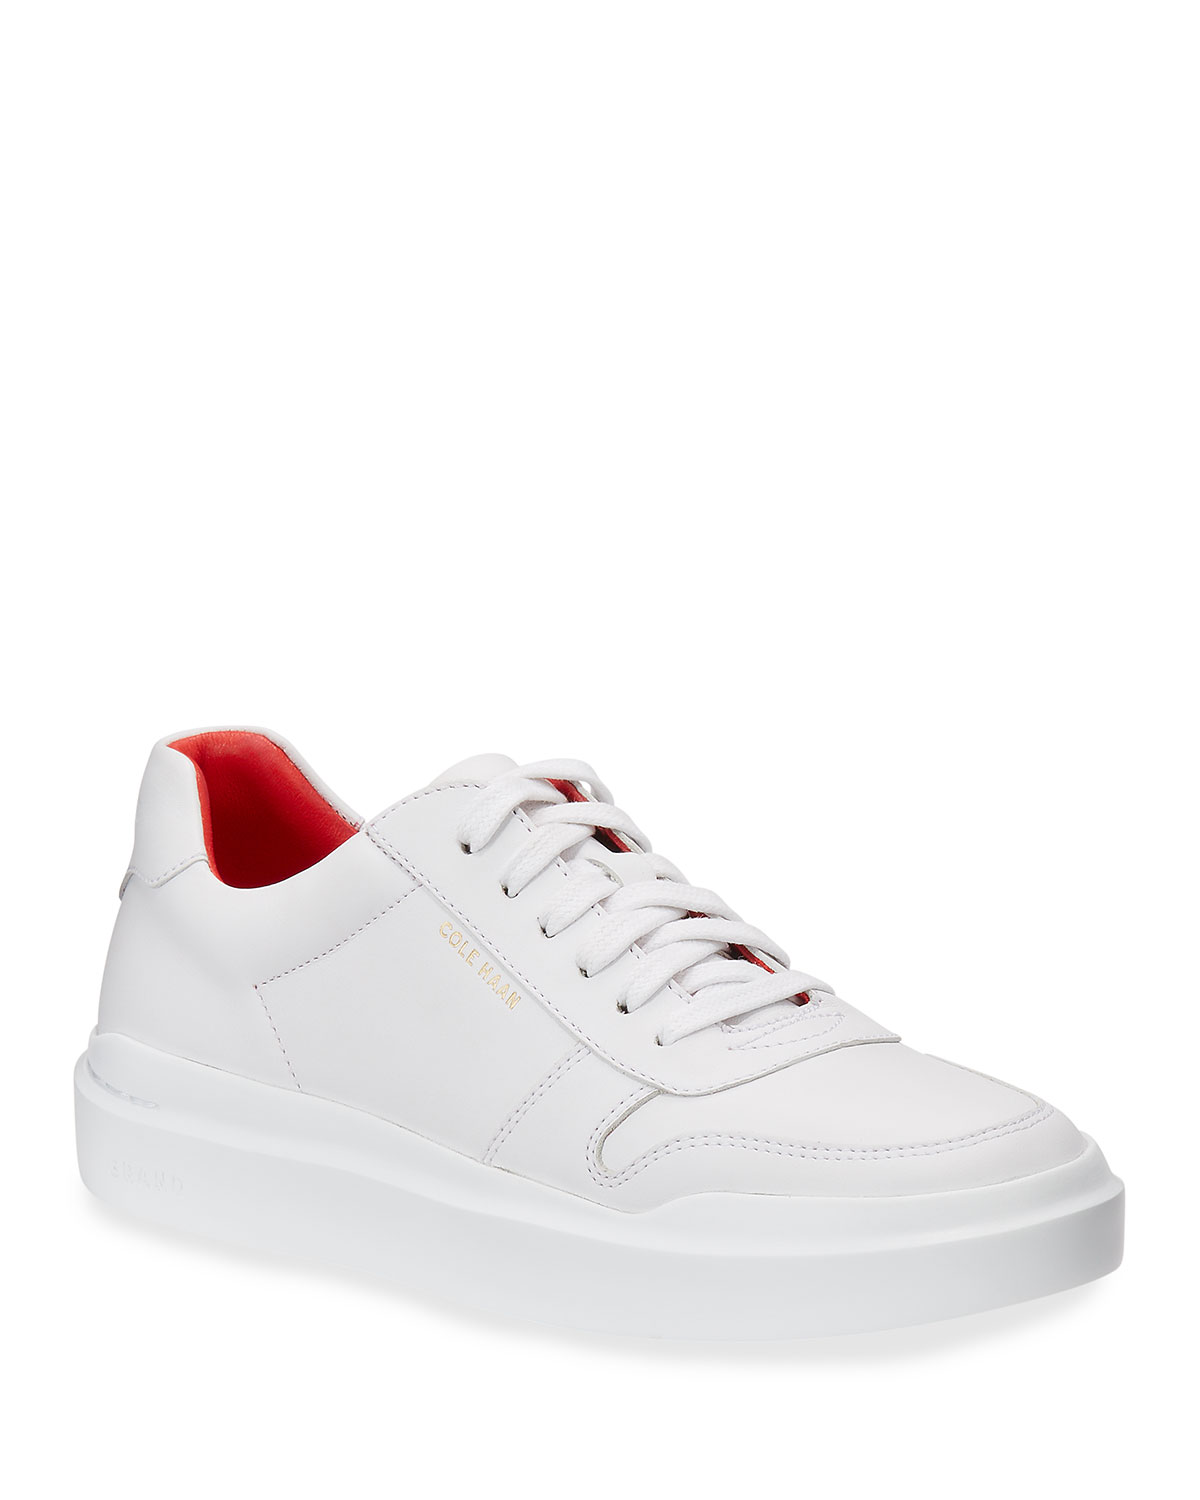 Grandpro Rally Court Sneakers